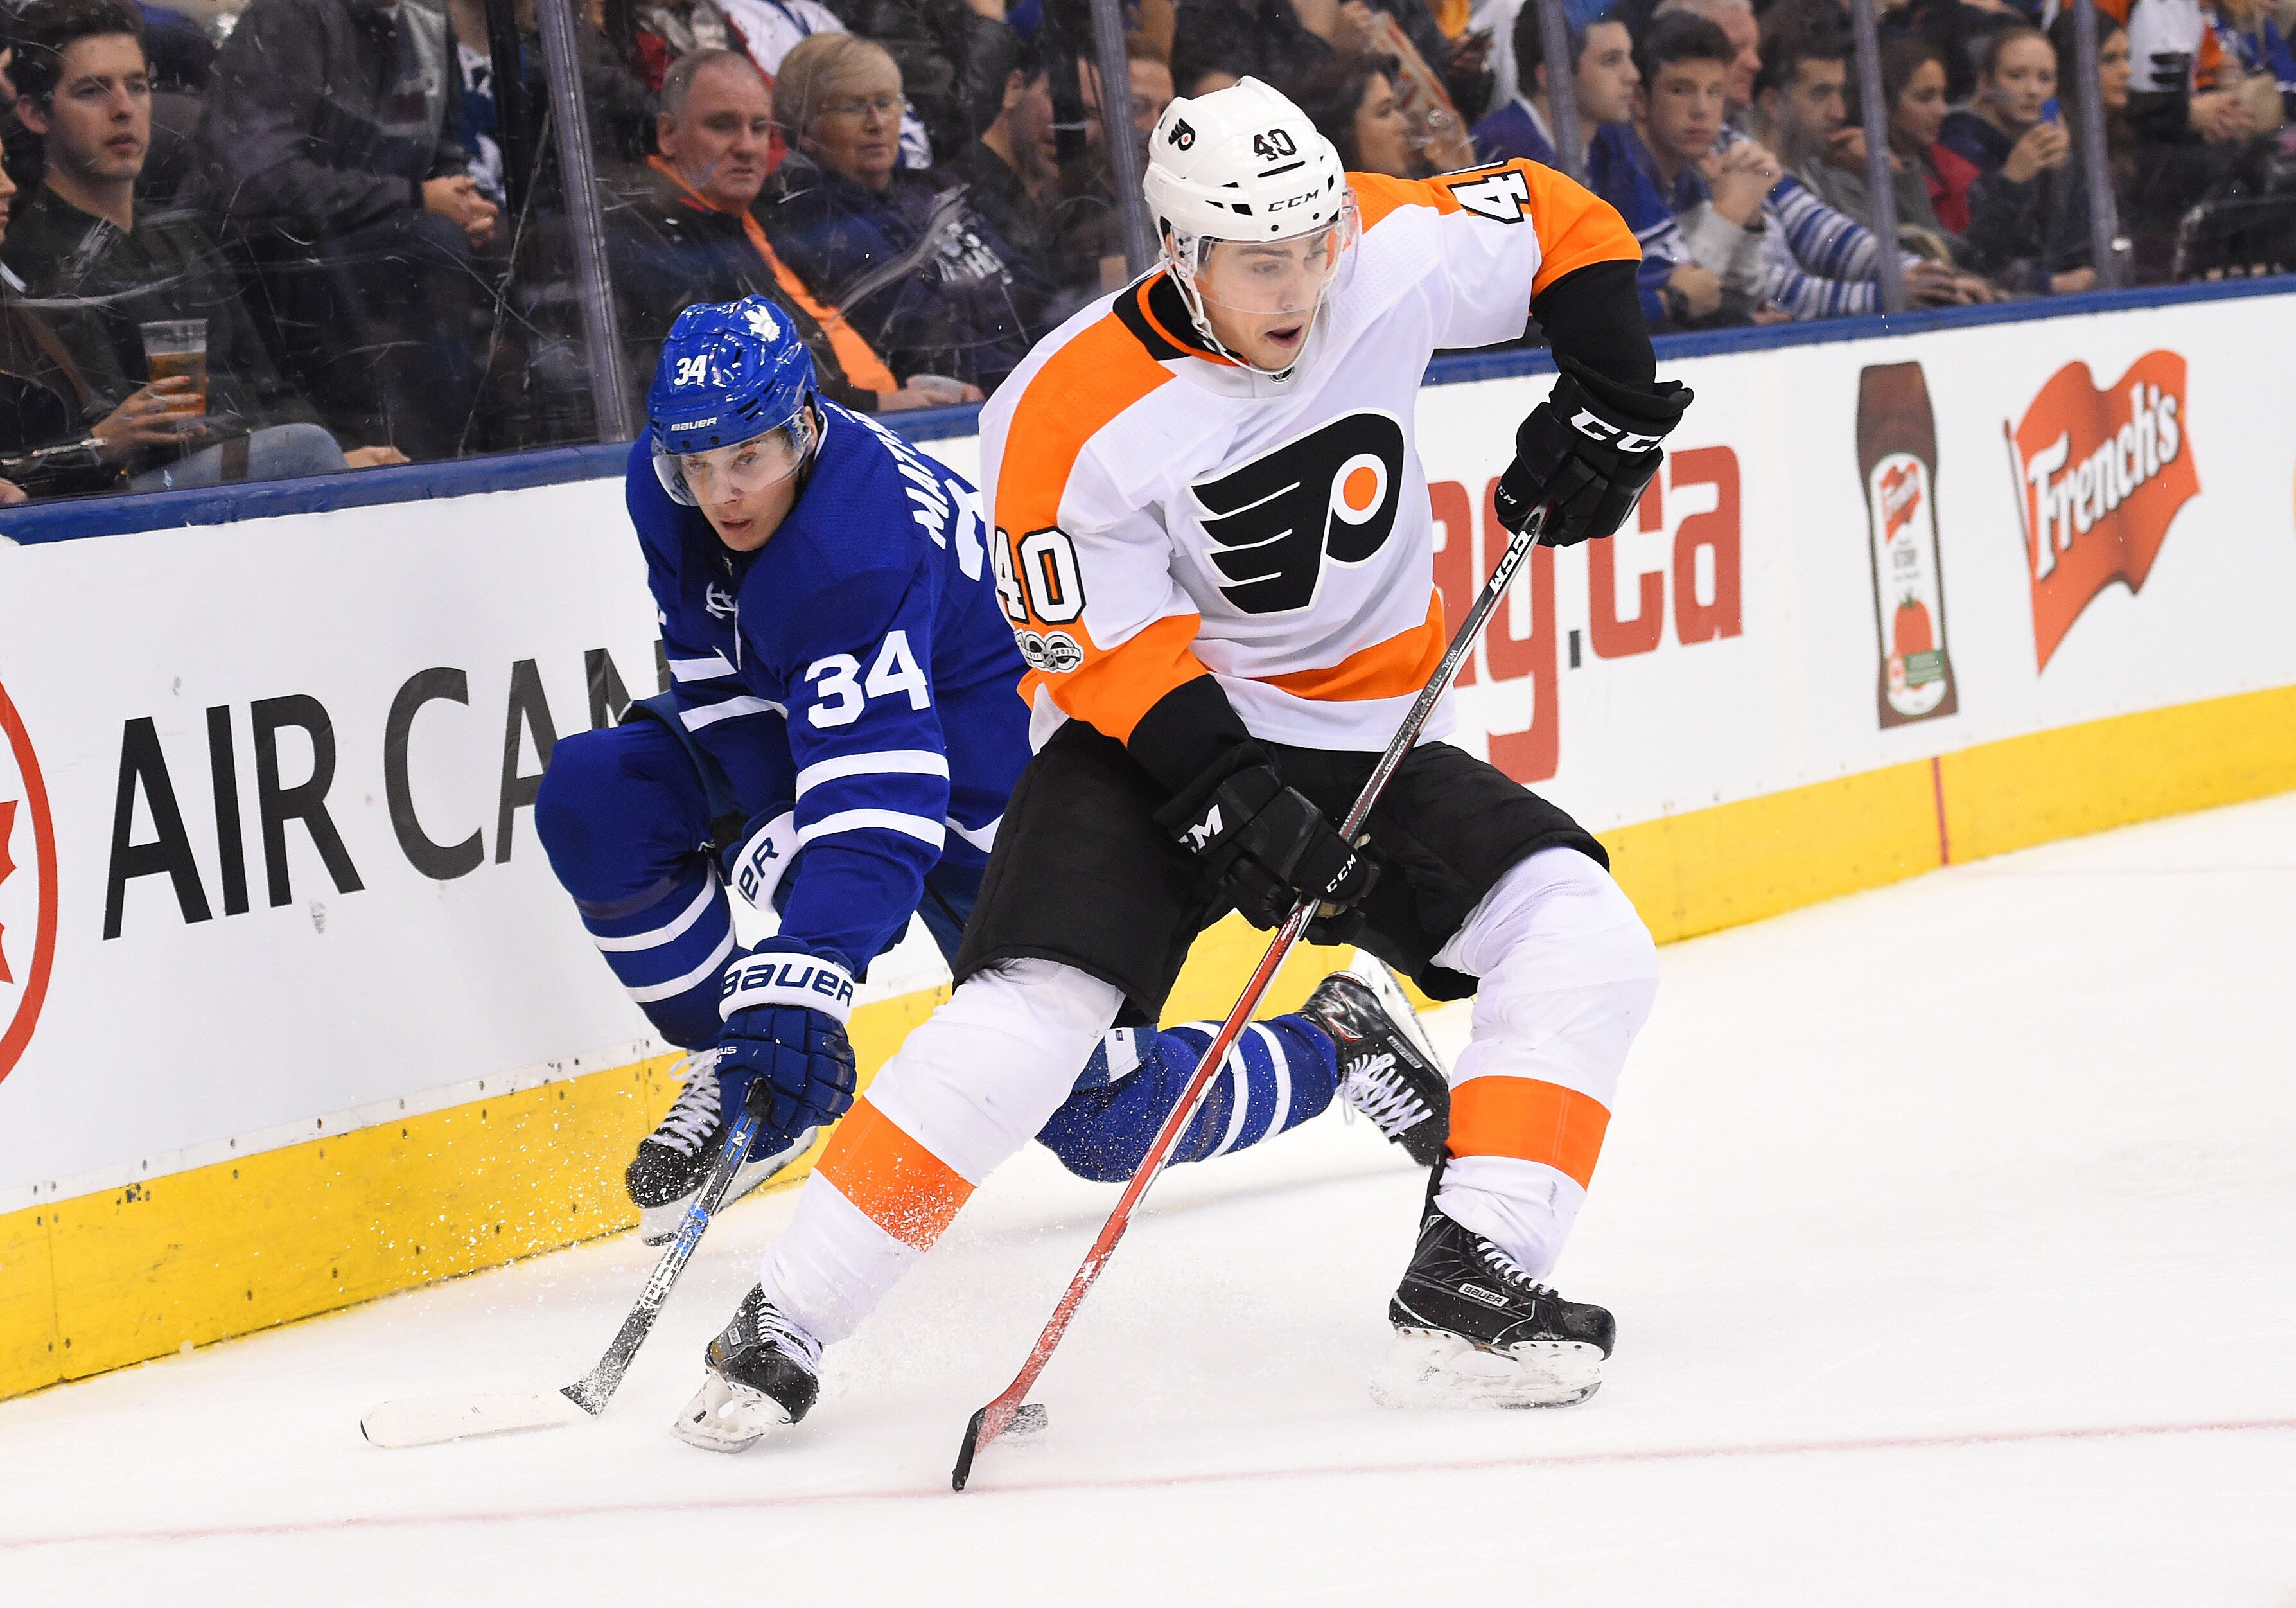 867655852-nhl-oct-28-flyers-at-maple-leafs.jpg